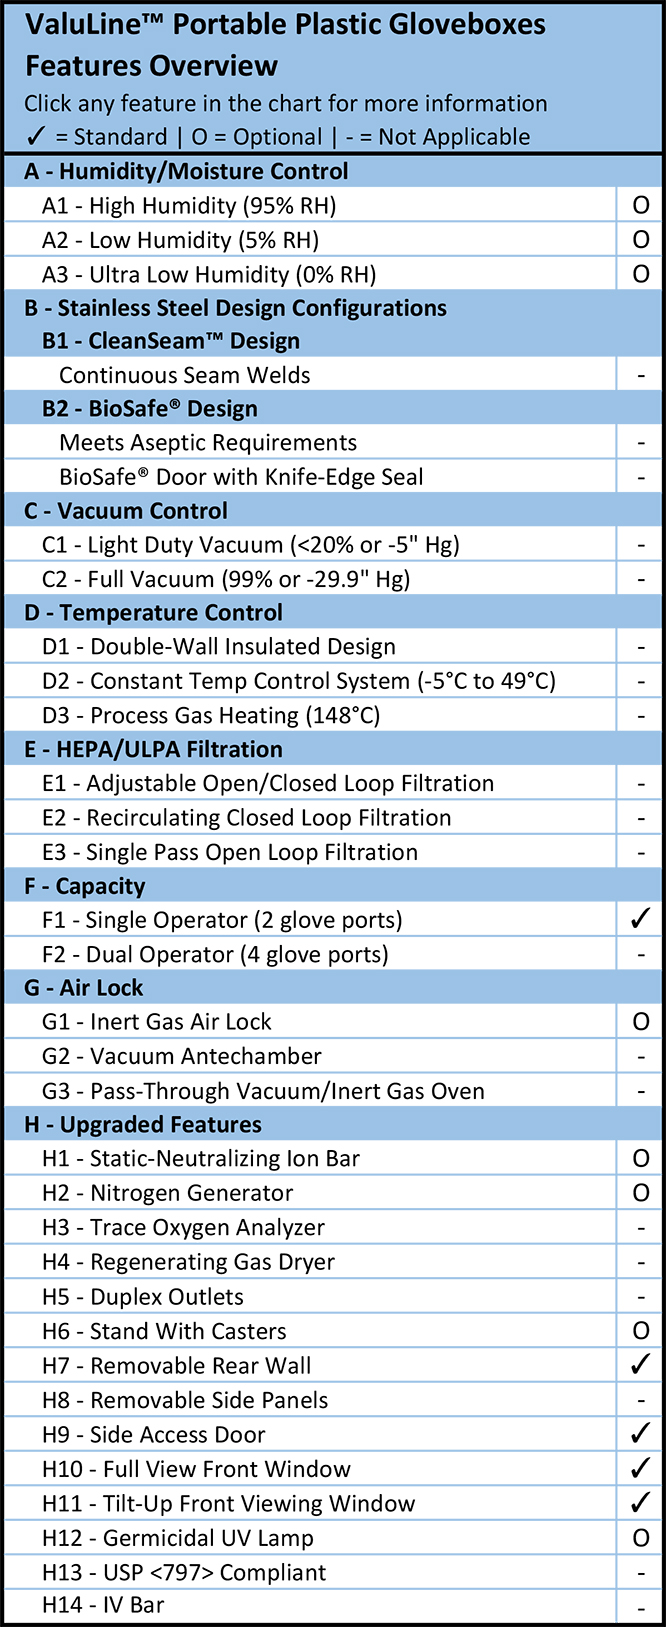 ValuLine™ Portable Plastic Gloveboxes Features Overview